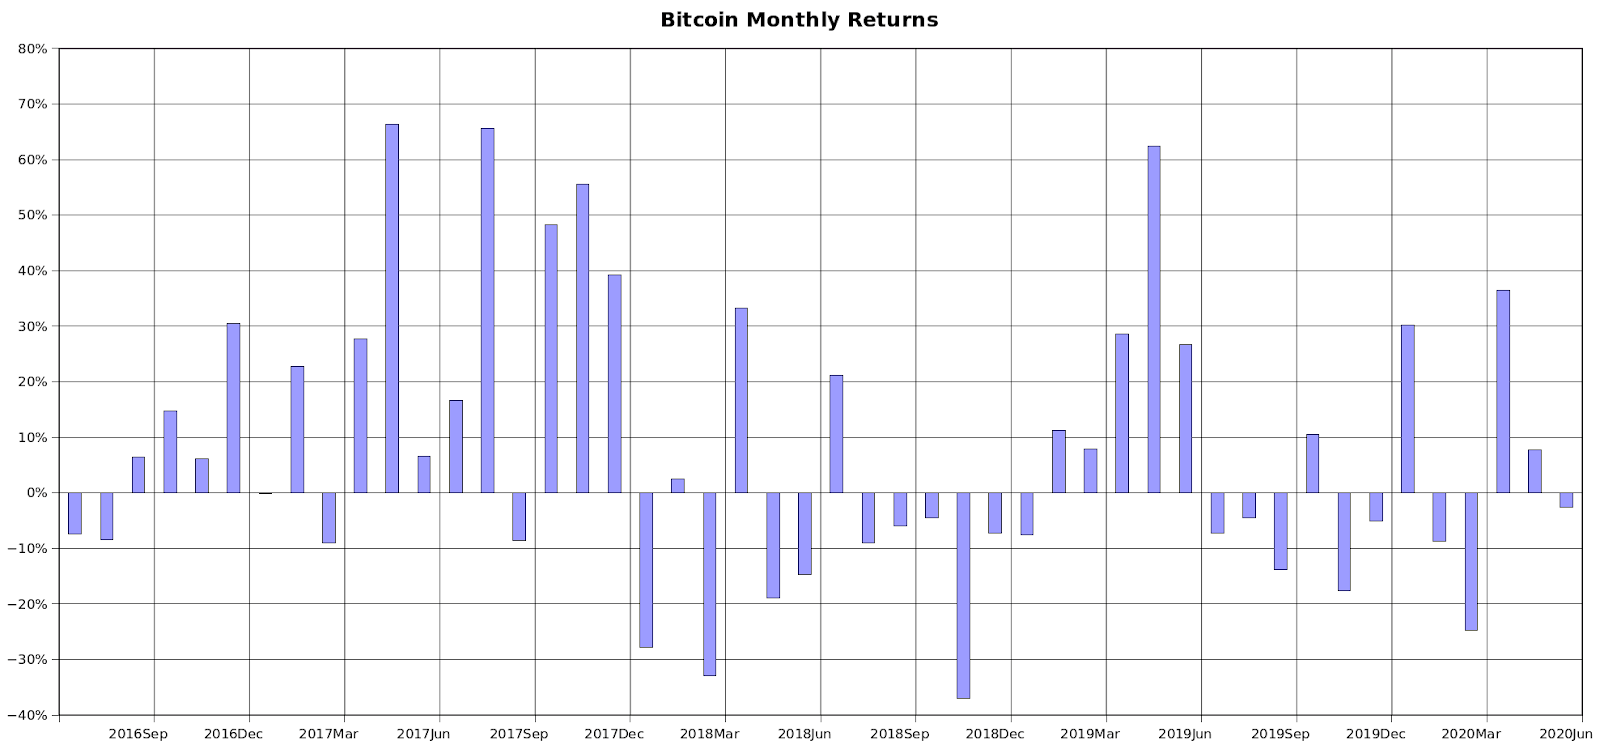 Bitcoin monthly returns during the last halving period